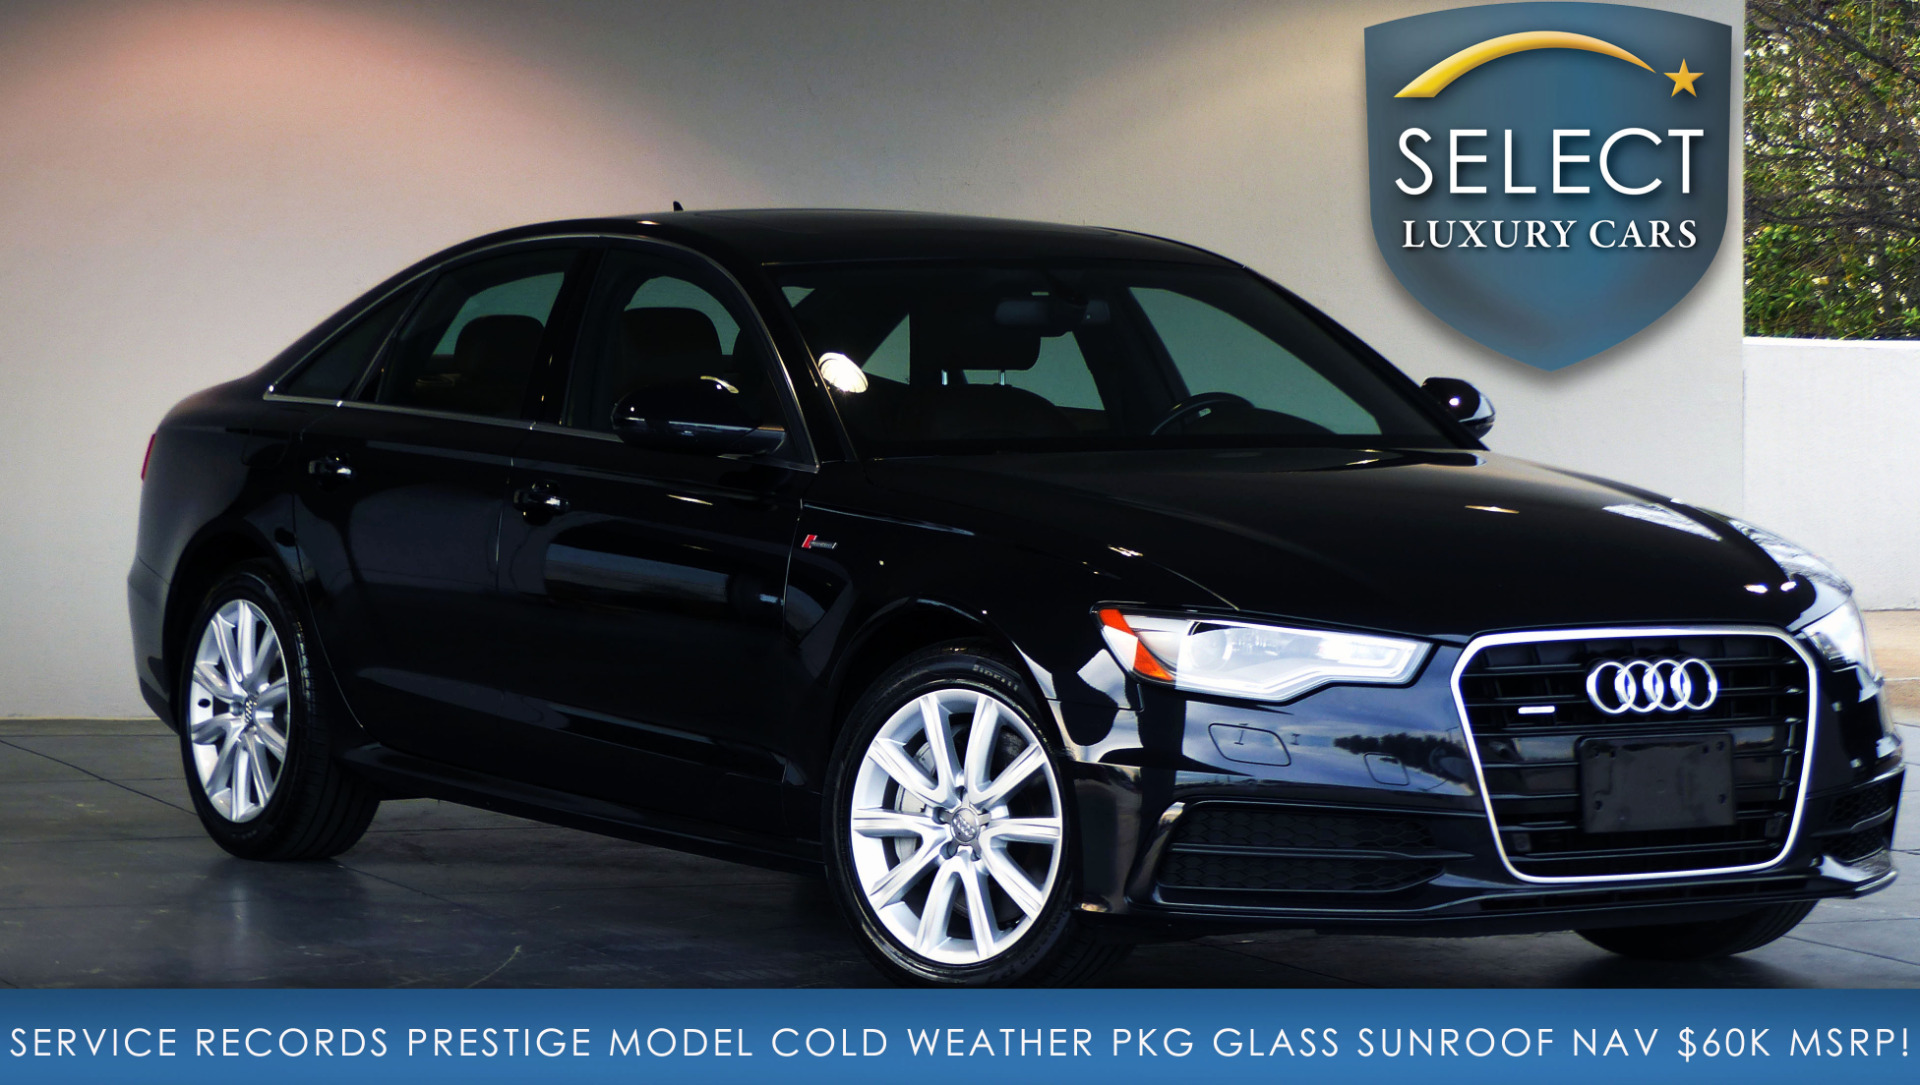 used 2014 audi a6 3 0t prestige marietta ga. Black Bedroom Furniture Sets. Home Design Ideas